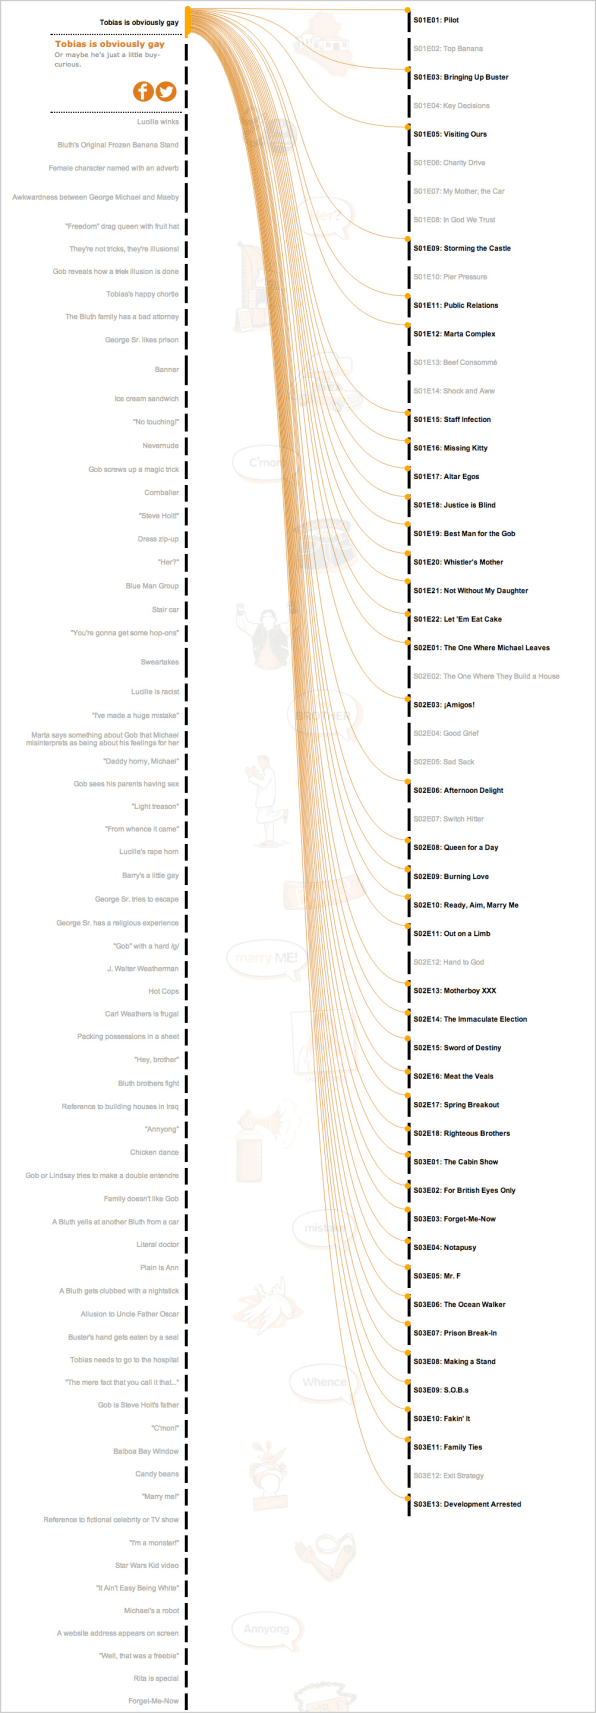 """Infographic: An Interactive Guide To The Recurring Jokes On """"Arrested Development"""""""